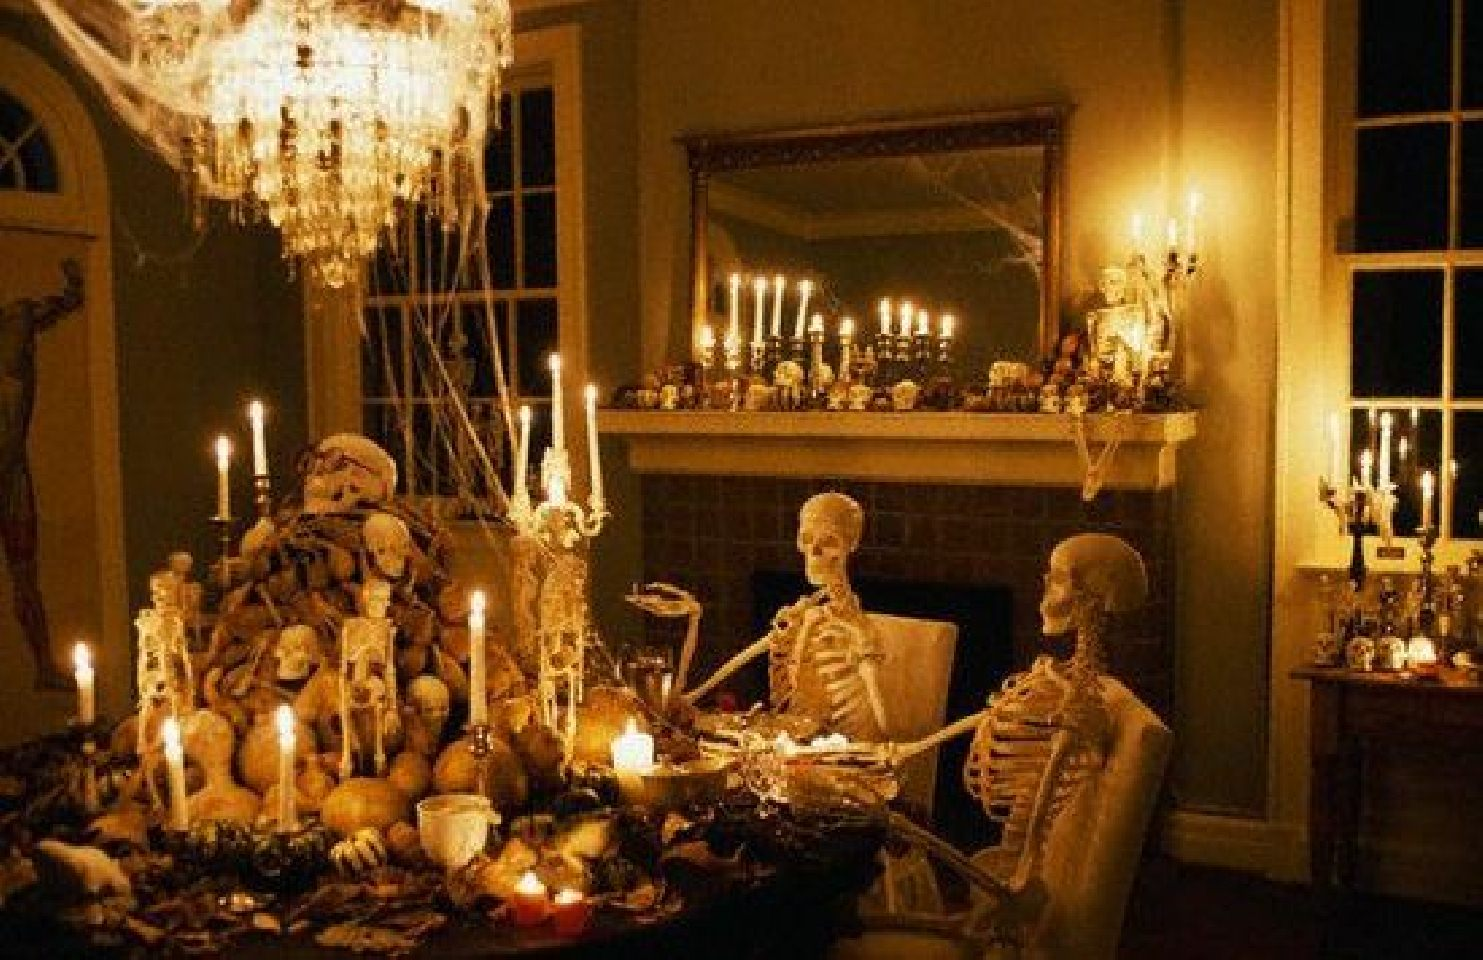 House Decoration Ideas 2016 For Halloween Party &amp Lighting - Scary Halloween Party Decorations